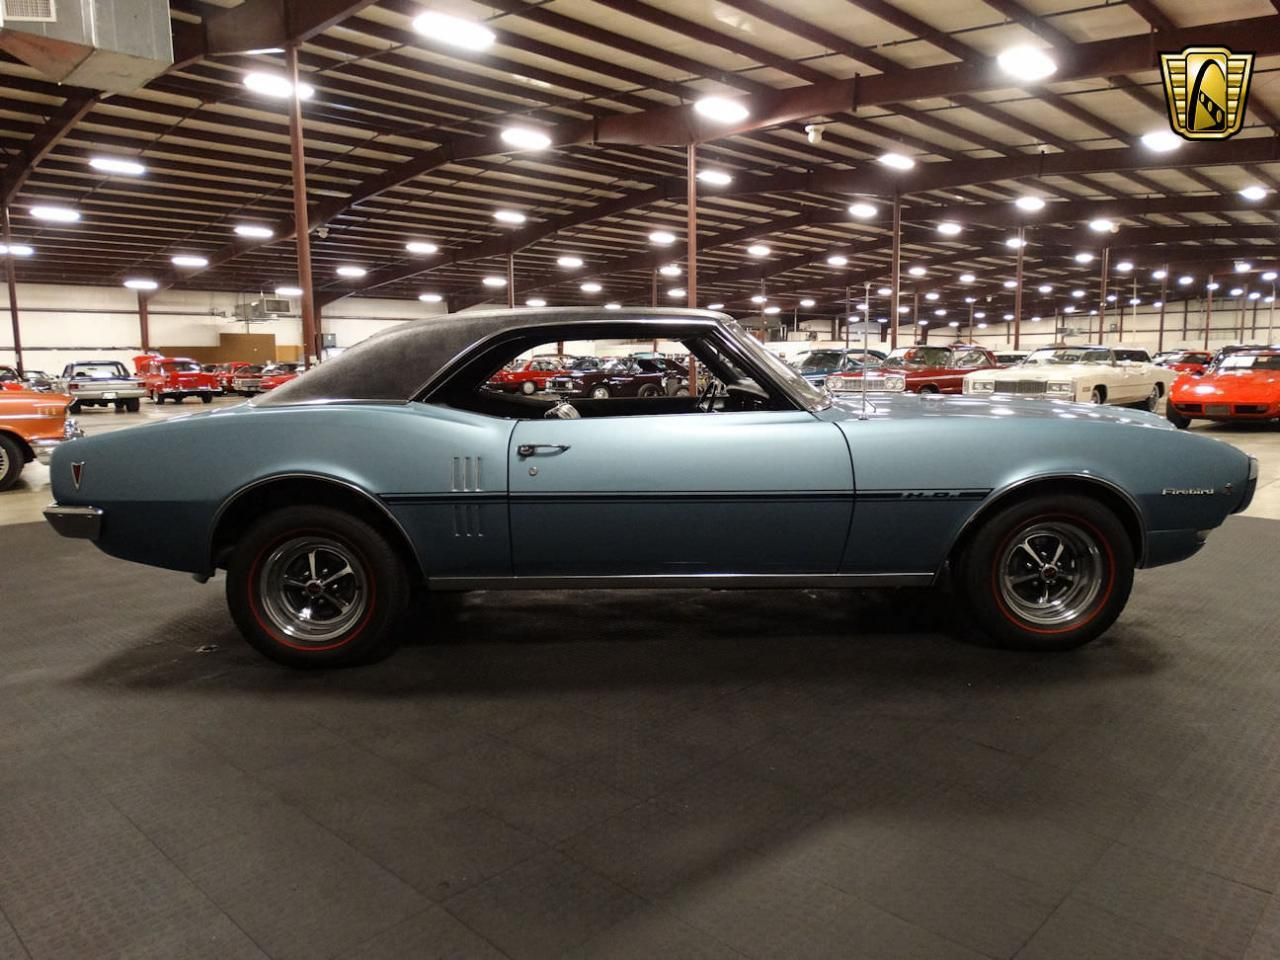 Large Picture of Classic '68 Pontiac Firebird located in Memphis Indiana - $24,995.00 Offered by Gateway Classic Cars - Louisville - MFU0